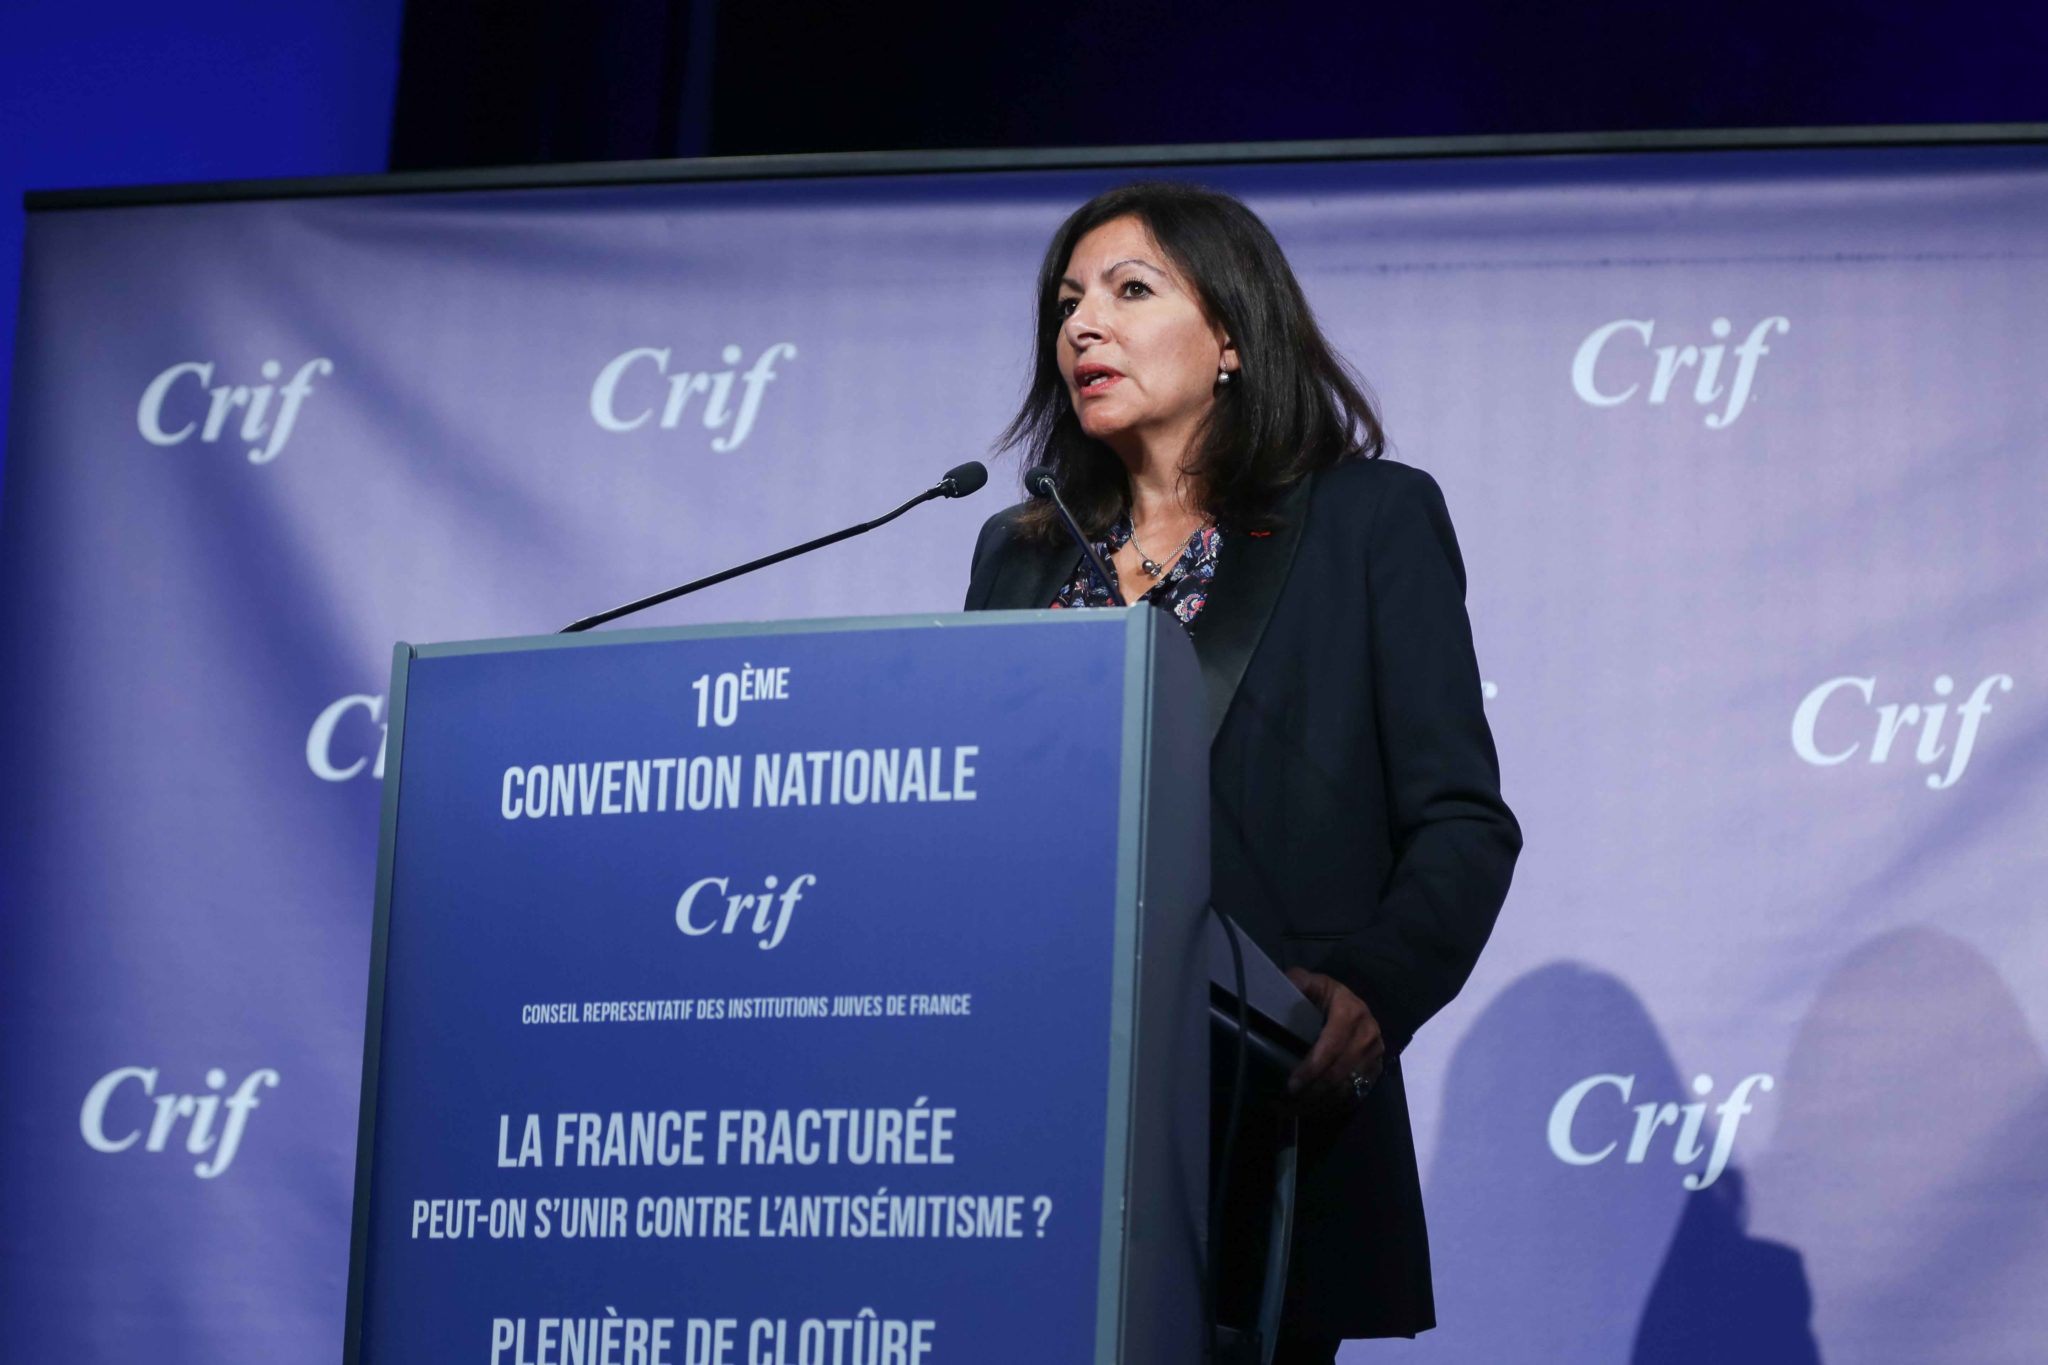 Paris' mayor Anne Hidalgo takes part in the 10th national convention of the Representative Council of Jewish Institutions of France (CRIF - Conseil Representatif des Institutions juives de France) on November 17, 2019, at Le Palais des Congres in Paris.